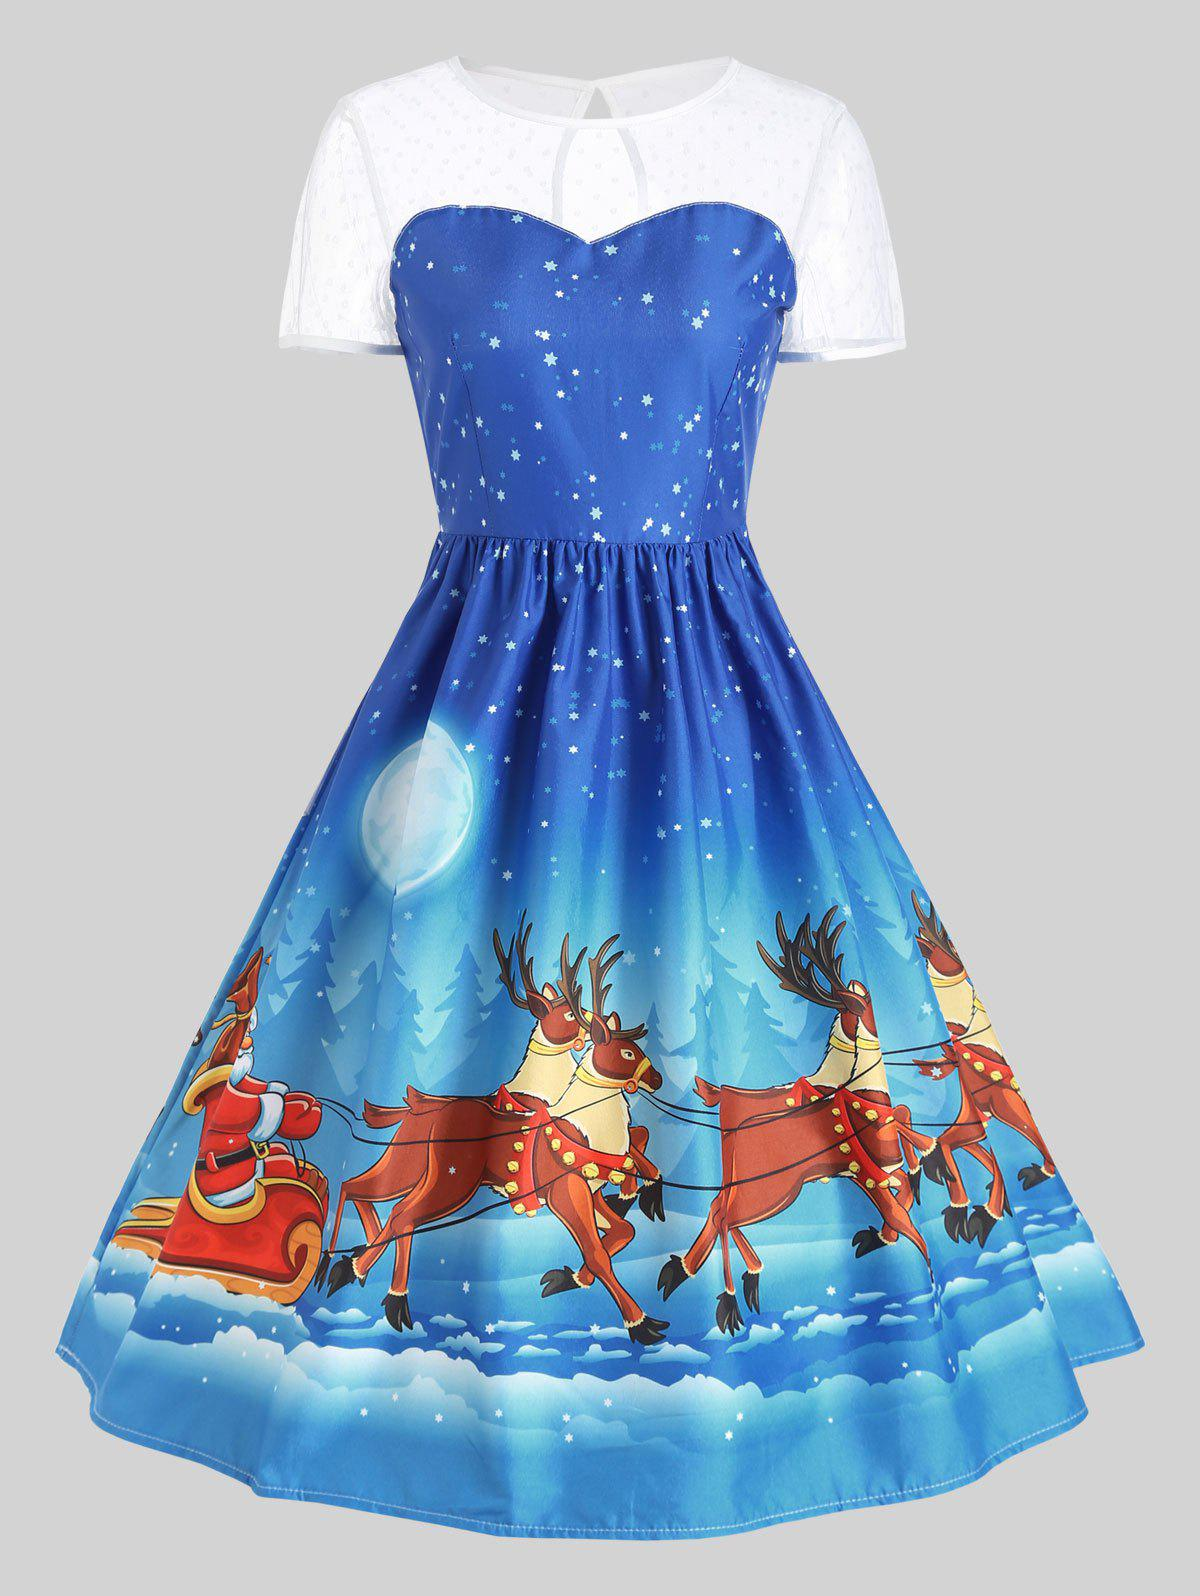 Mesh Panel Sleigh Santa Claus Christmas Party DressWOMEN<br><br>Size: M; Color: BLUE; Style: Cute; Material: Polyester; Silhouette: Ball Gown; Dresses Length: Mid-Calf; Neckline: Round Collar; Sleeve Length: Short Sleeves; Embellishment: Vintage; Pattern Type: Animal,Character,Print; With Belt: No; Season: Fall,Winter; Weight: 0.2400kg; Package Contents: 1 x Dress;